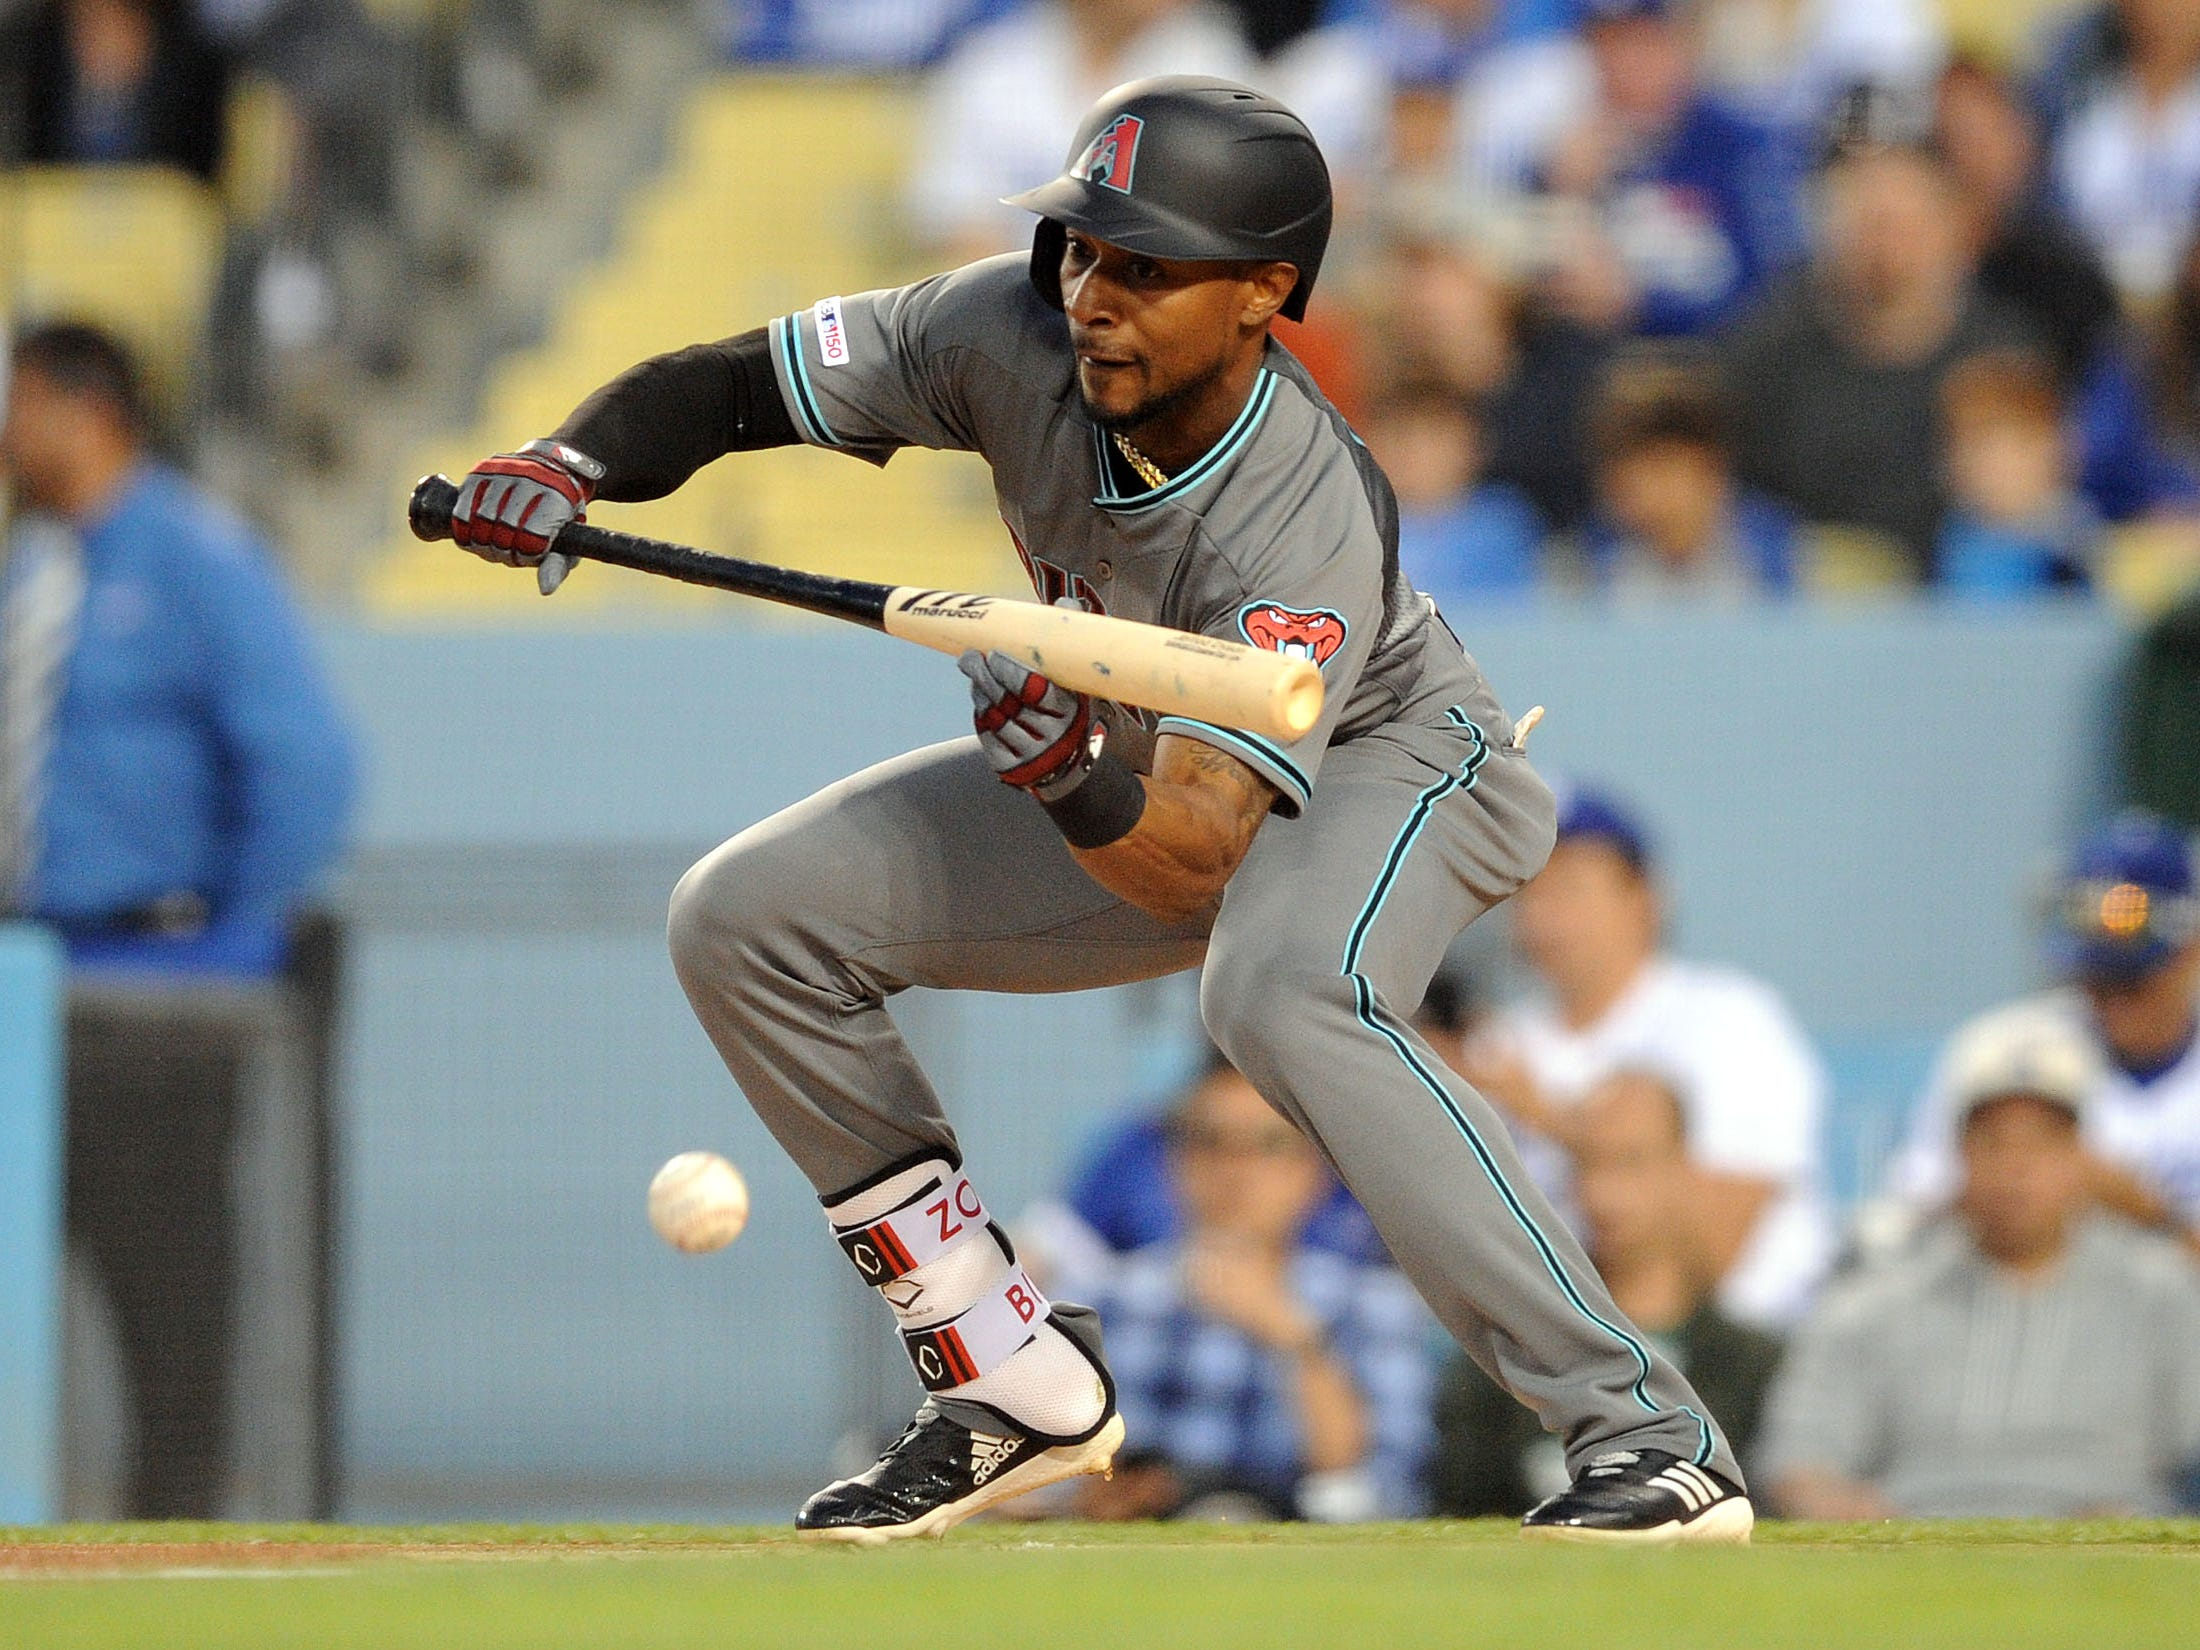 March 29, 2019; Los Angeles, CA, USA; Arizona Diamondbacks center fielder Jarrod Dyson (1) reaches first on a bunt against the Los Angeles Dodgers during the first inning at Dodger Stadium.